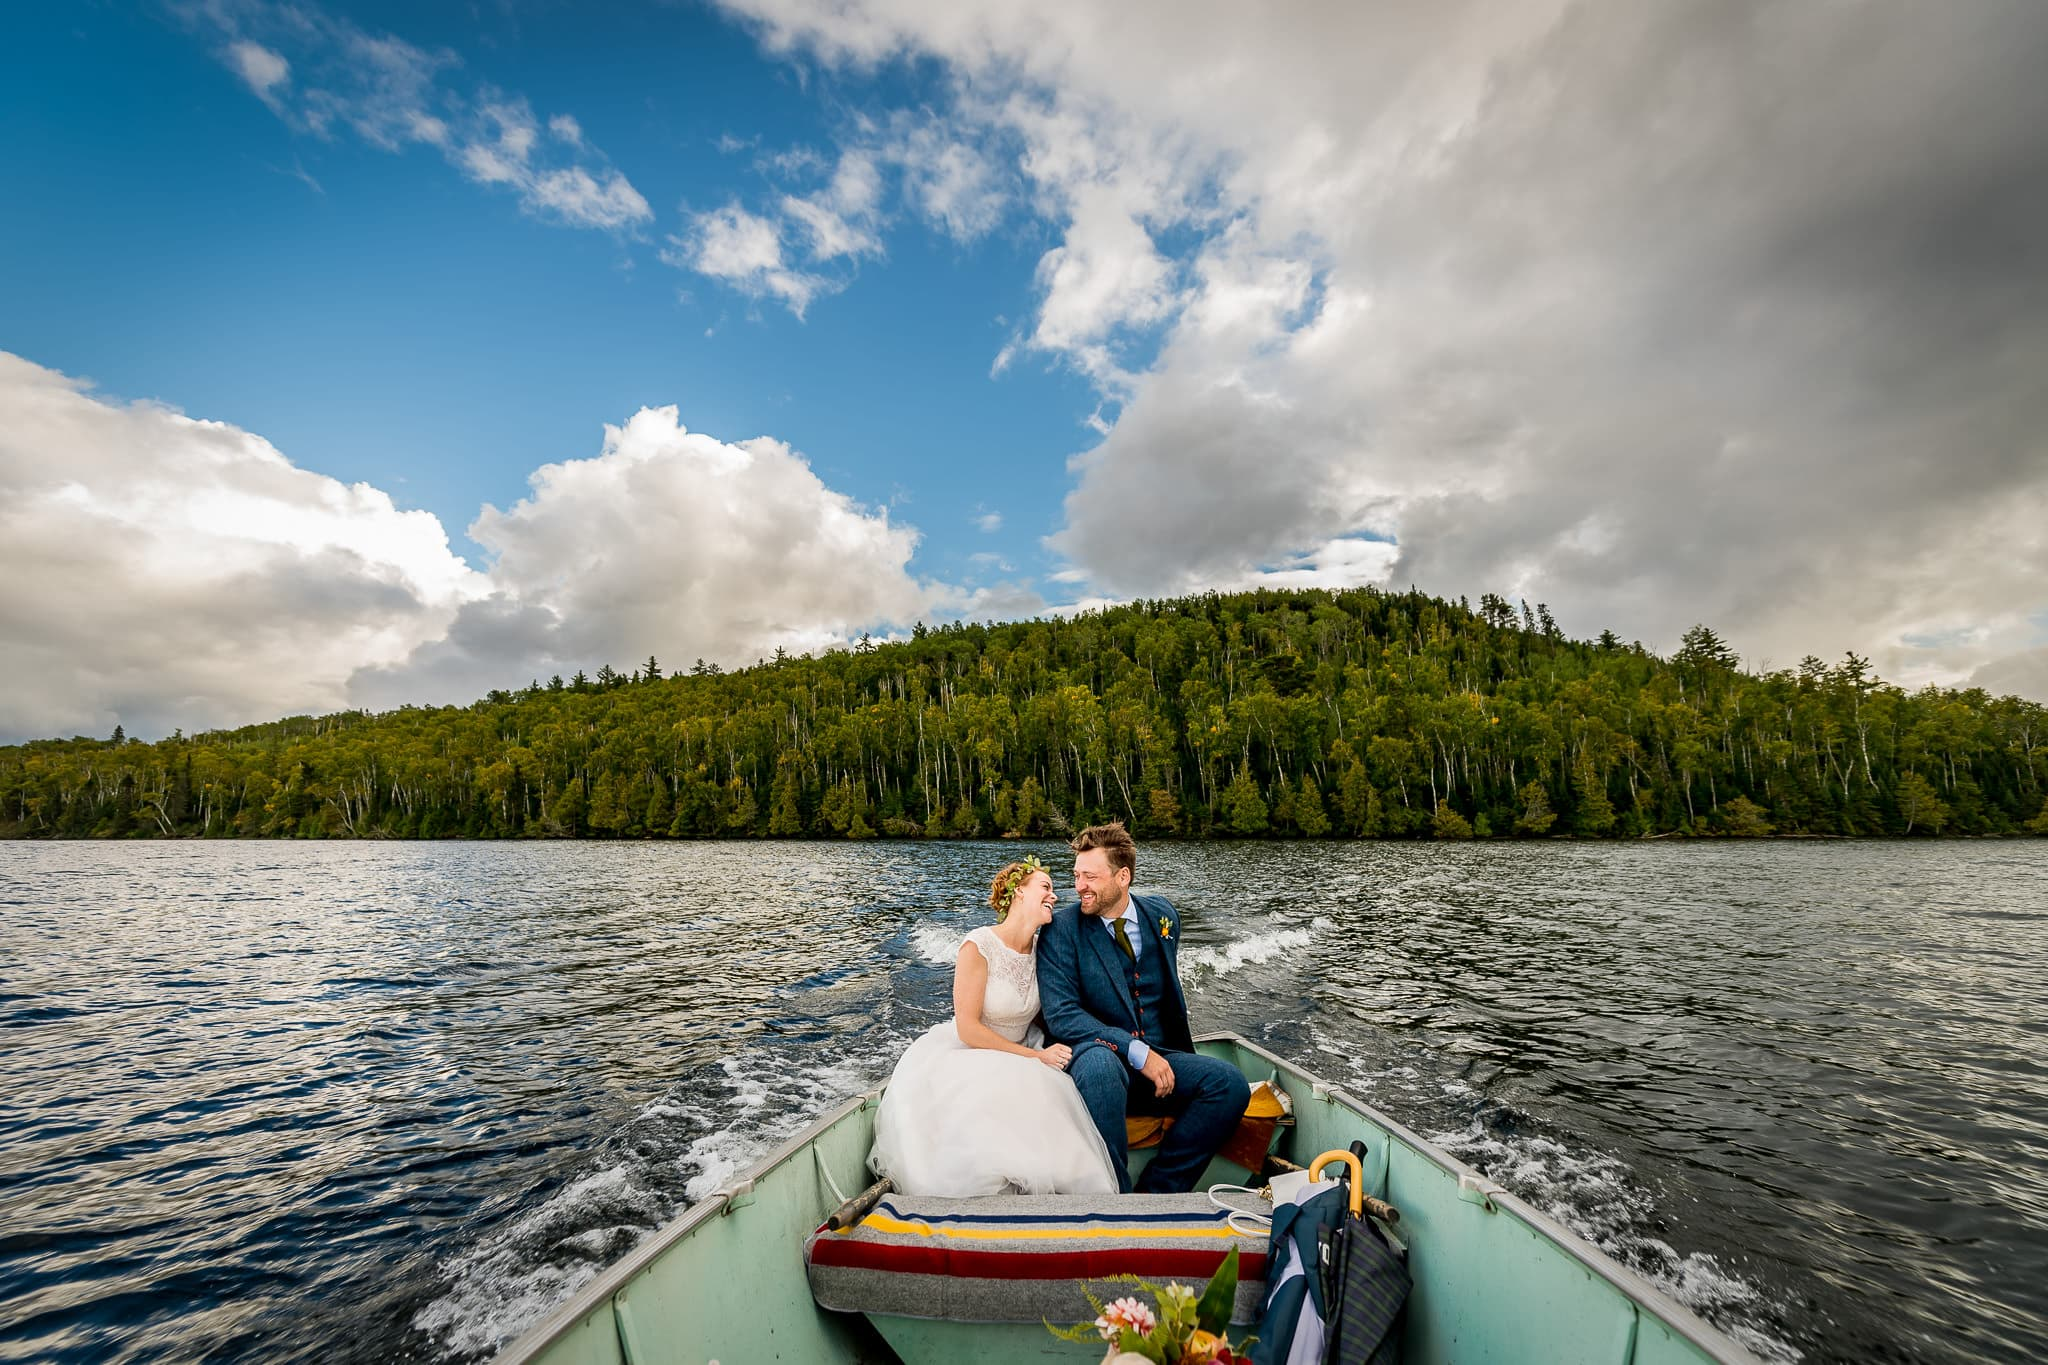 Minneapolis Bride and Groom driving a small fishing boat on their wedding day on a Minnesota lake